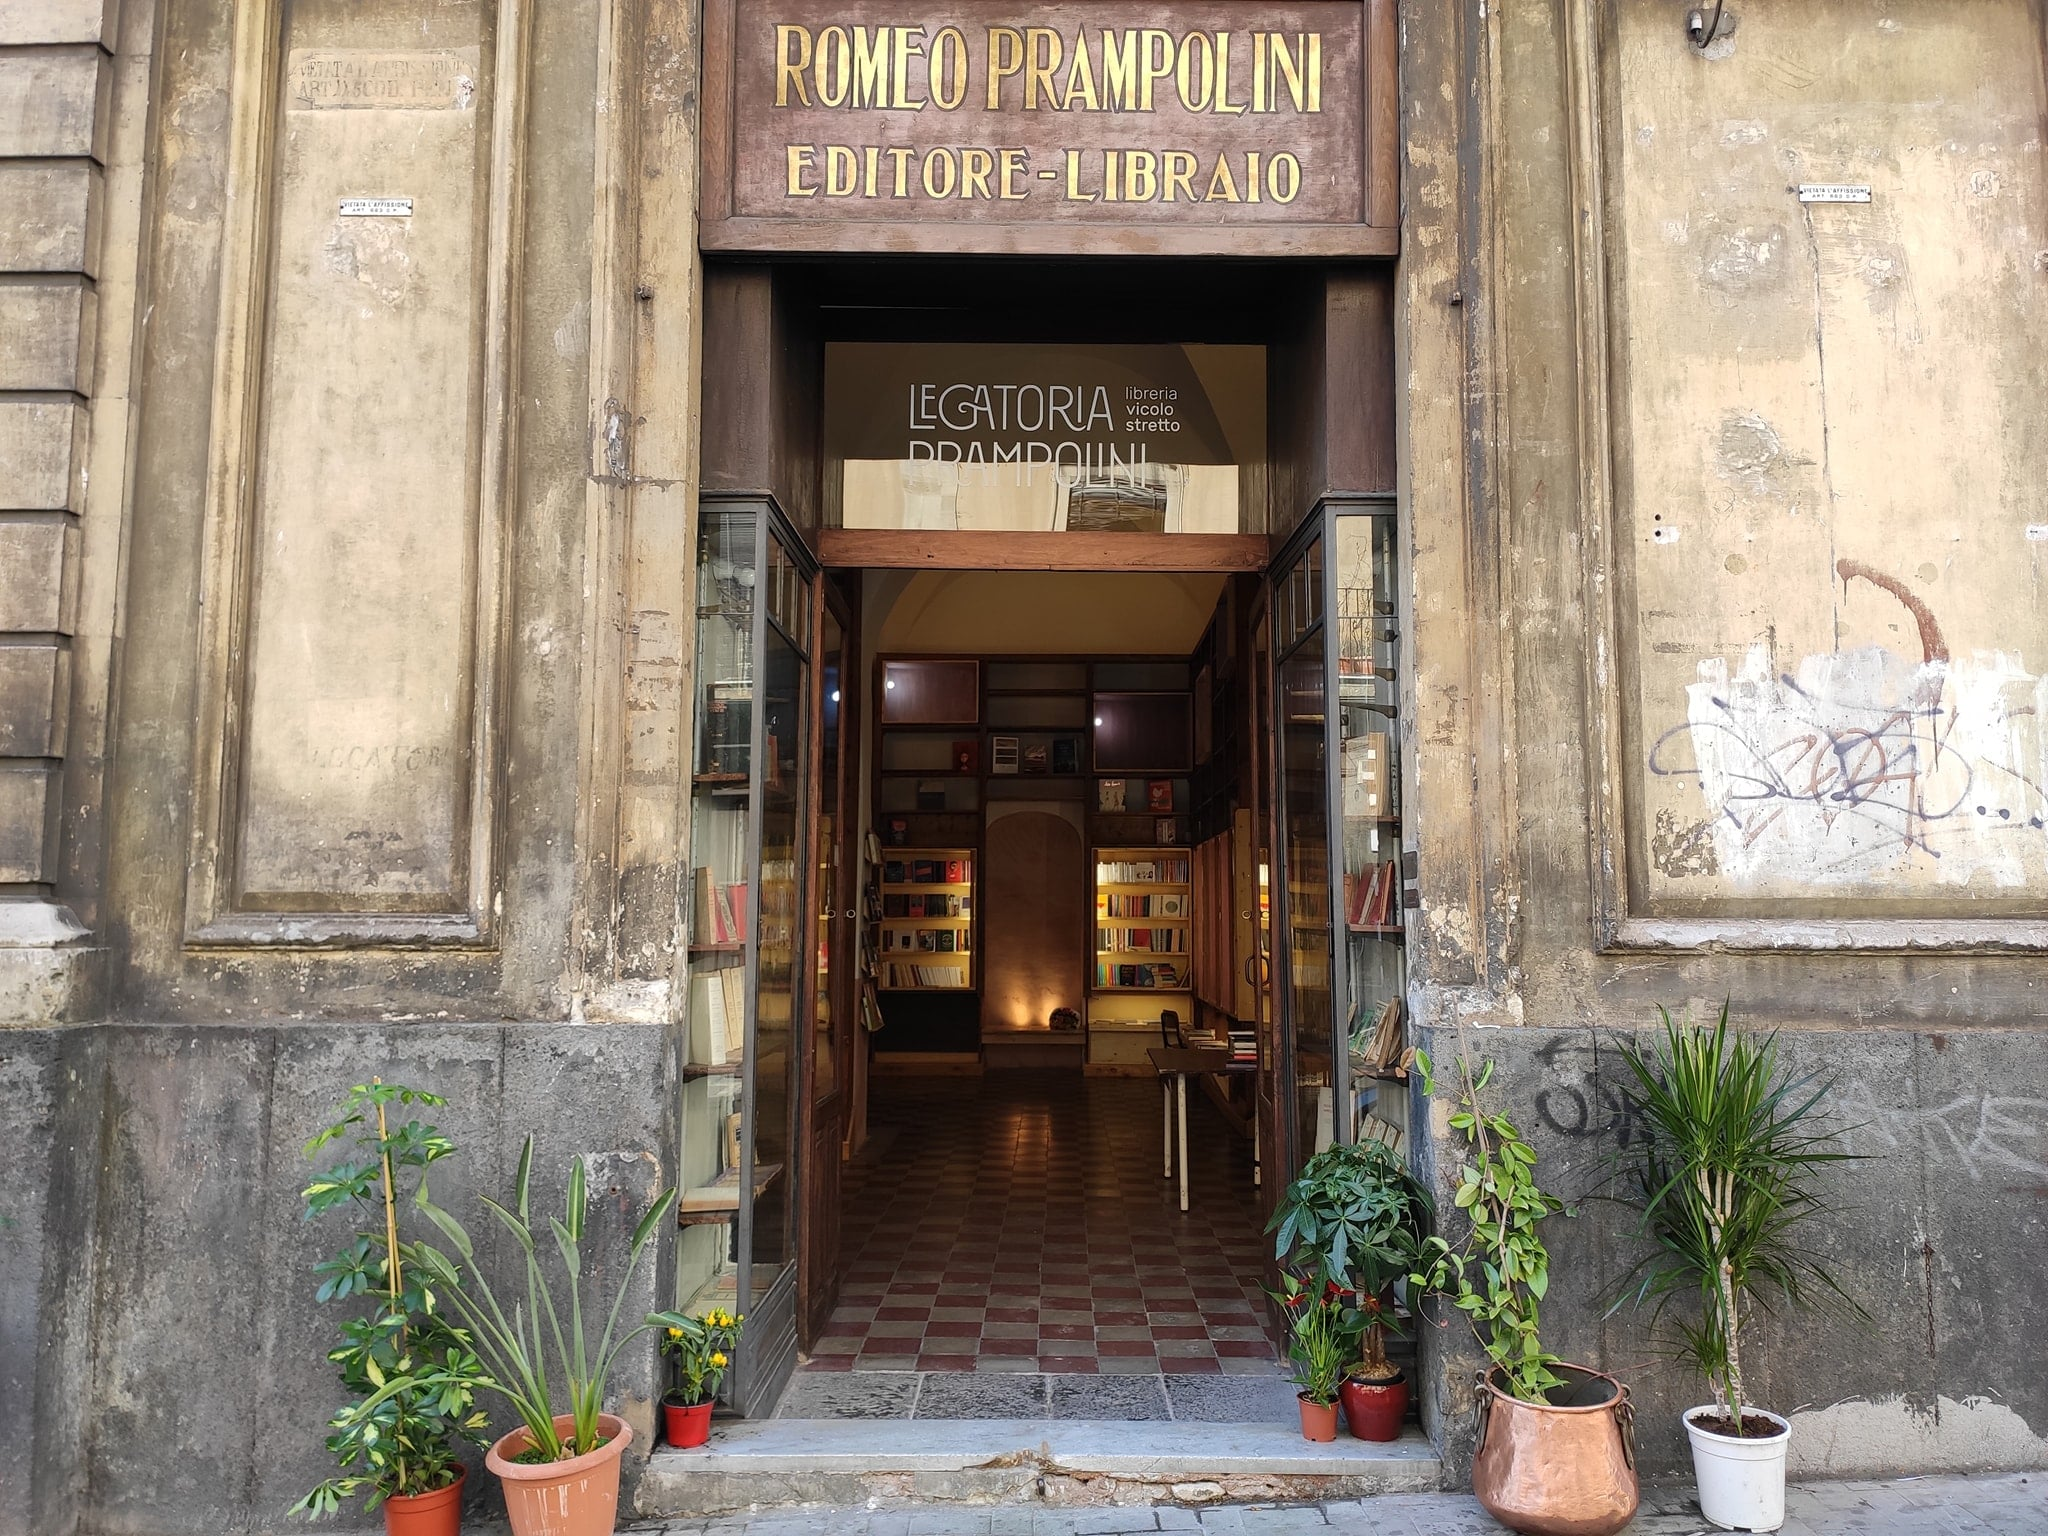 Legatoria Prampolini, a bookstore and cultural hub in Catania, Sicily.